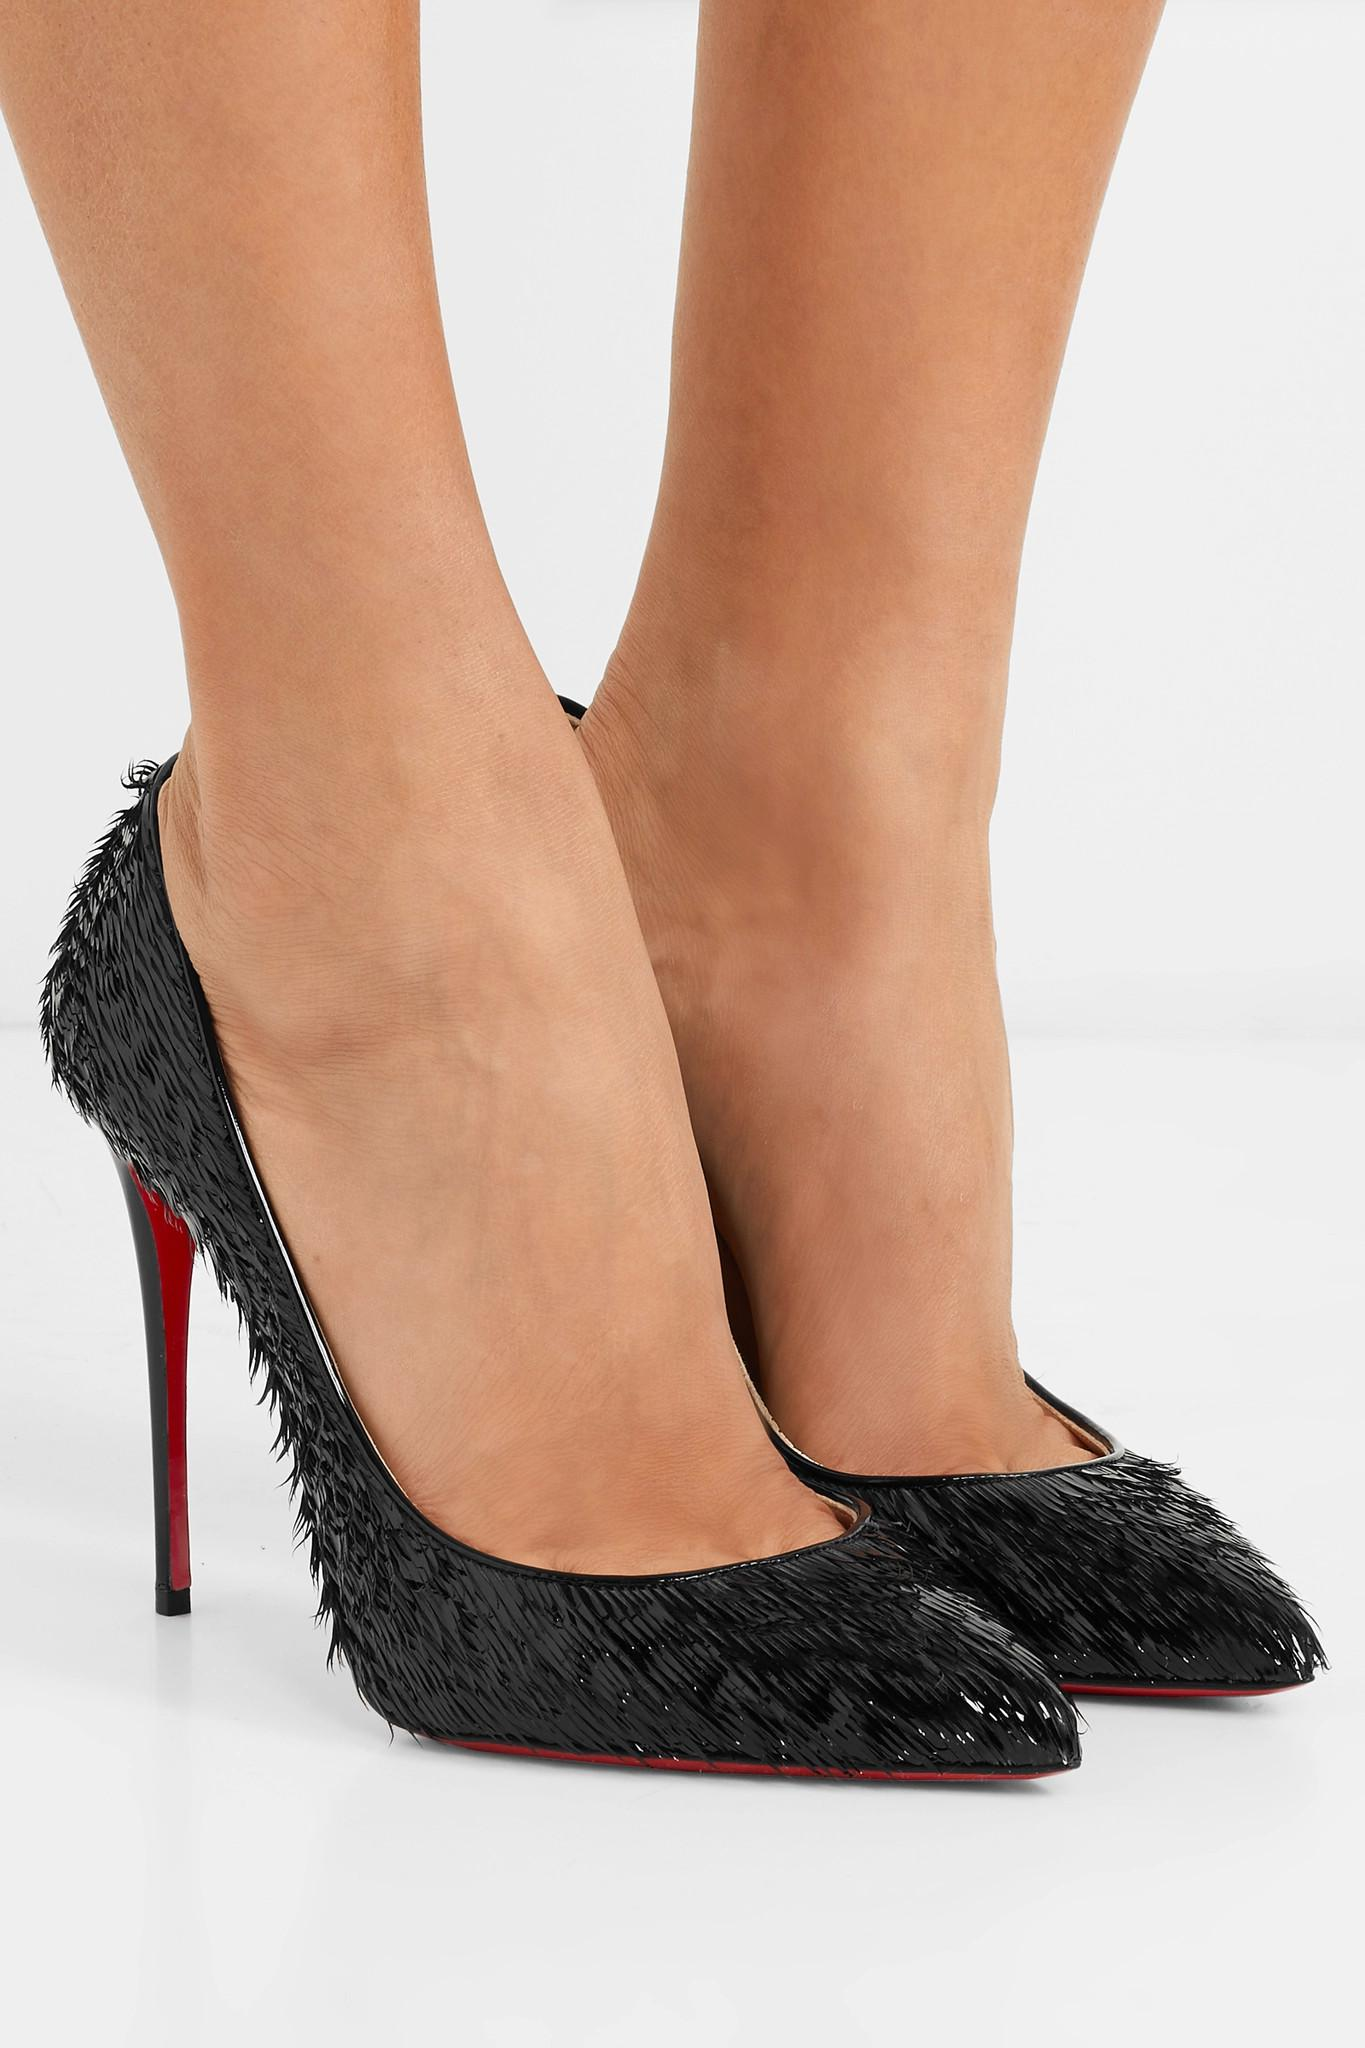 533ef15bc683 Christian Louboutin - Black Pigalle Follies 100 Fringed Patent-leather Pumps  - Lyst. View fullscreen